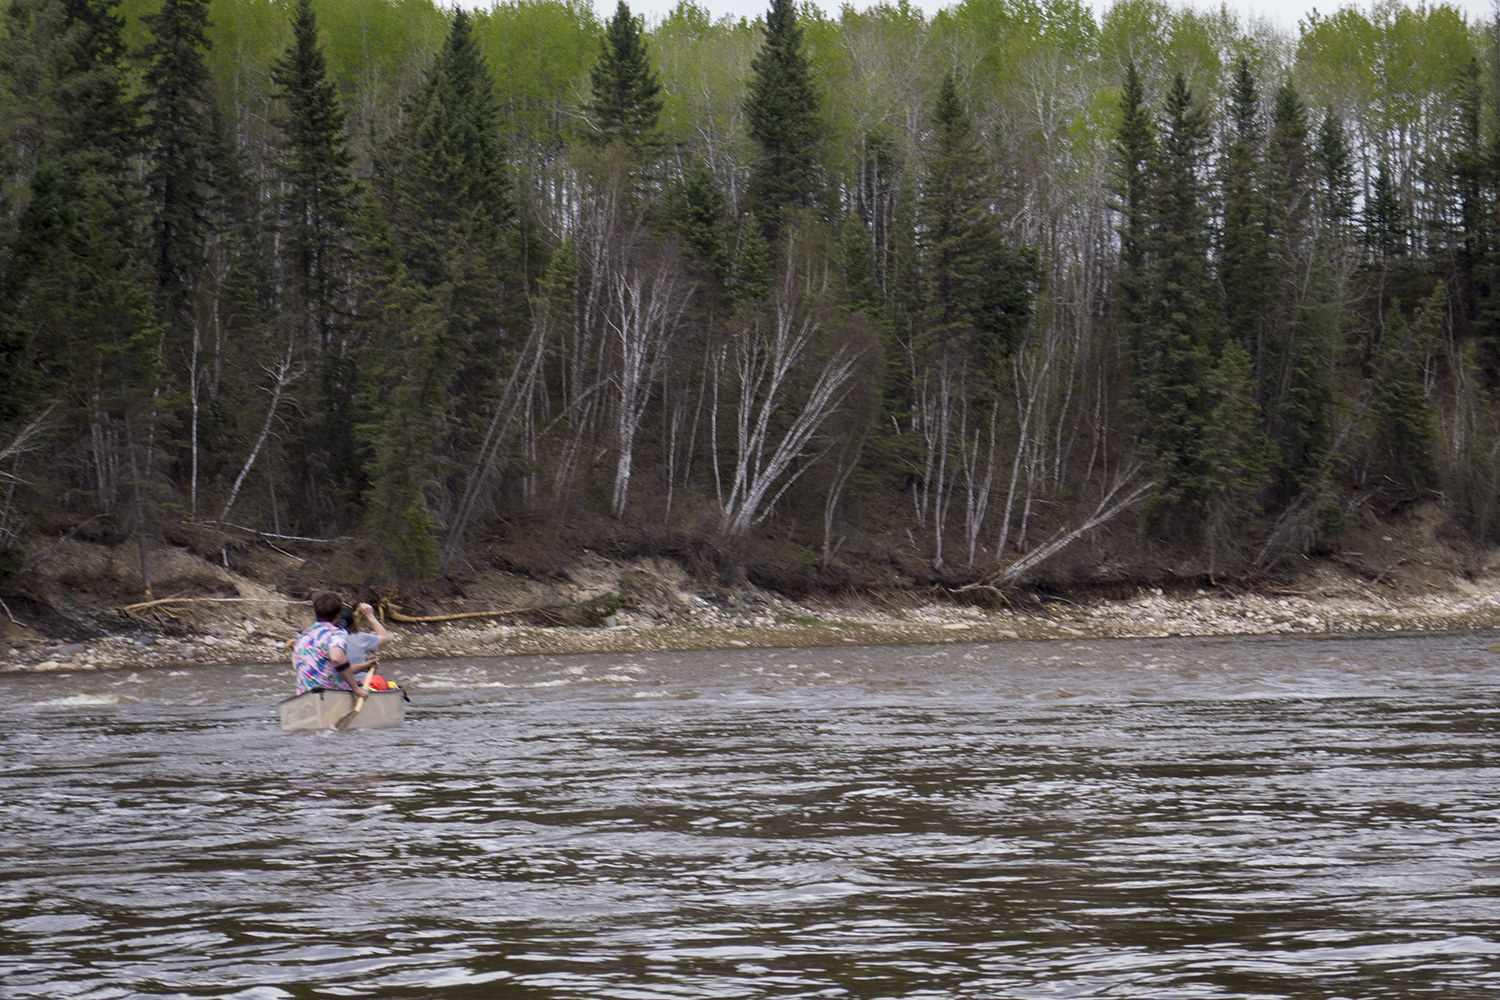 Nate and Gill paddling through rapids sans-lifejacket—which I may have also done but won't recommend (Goodson)